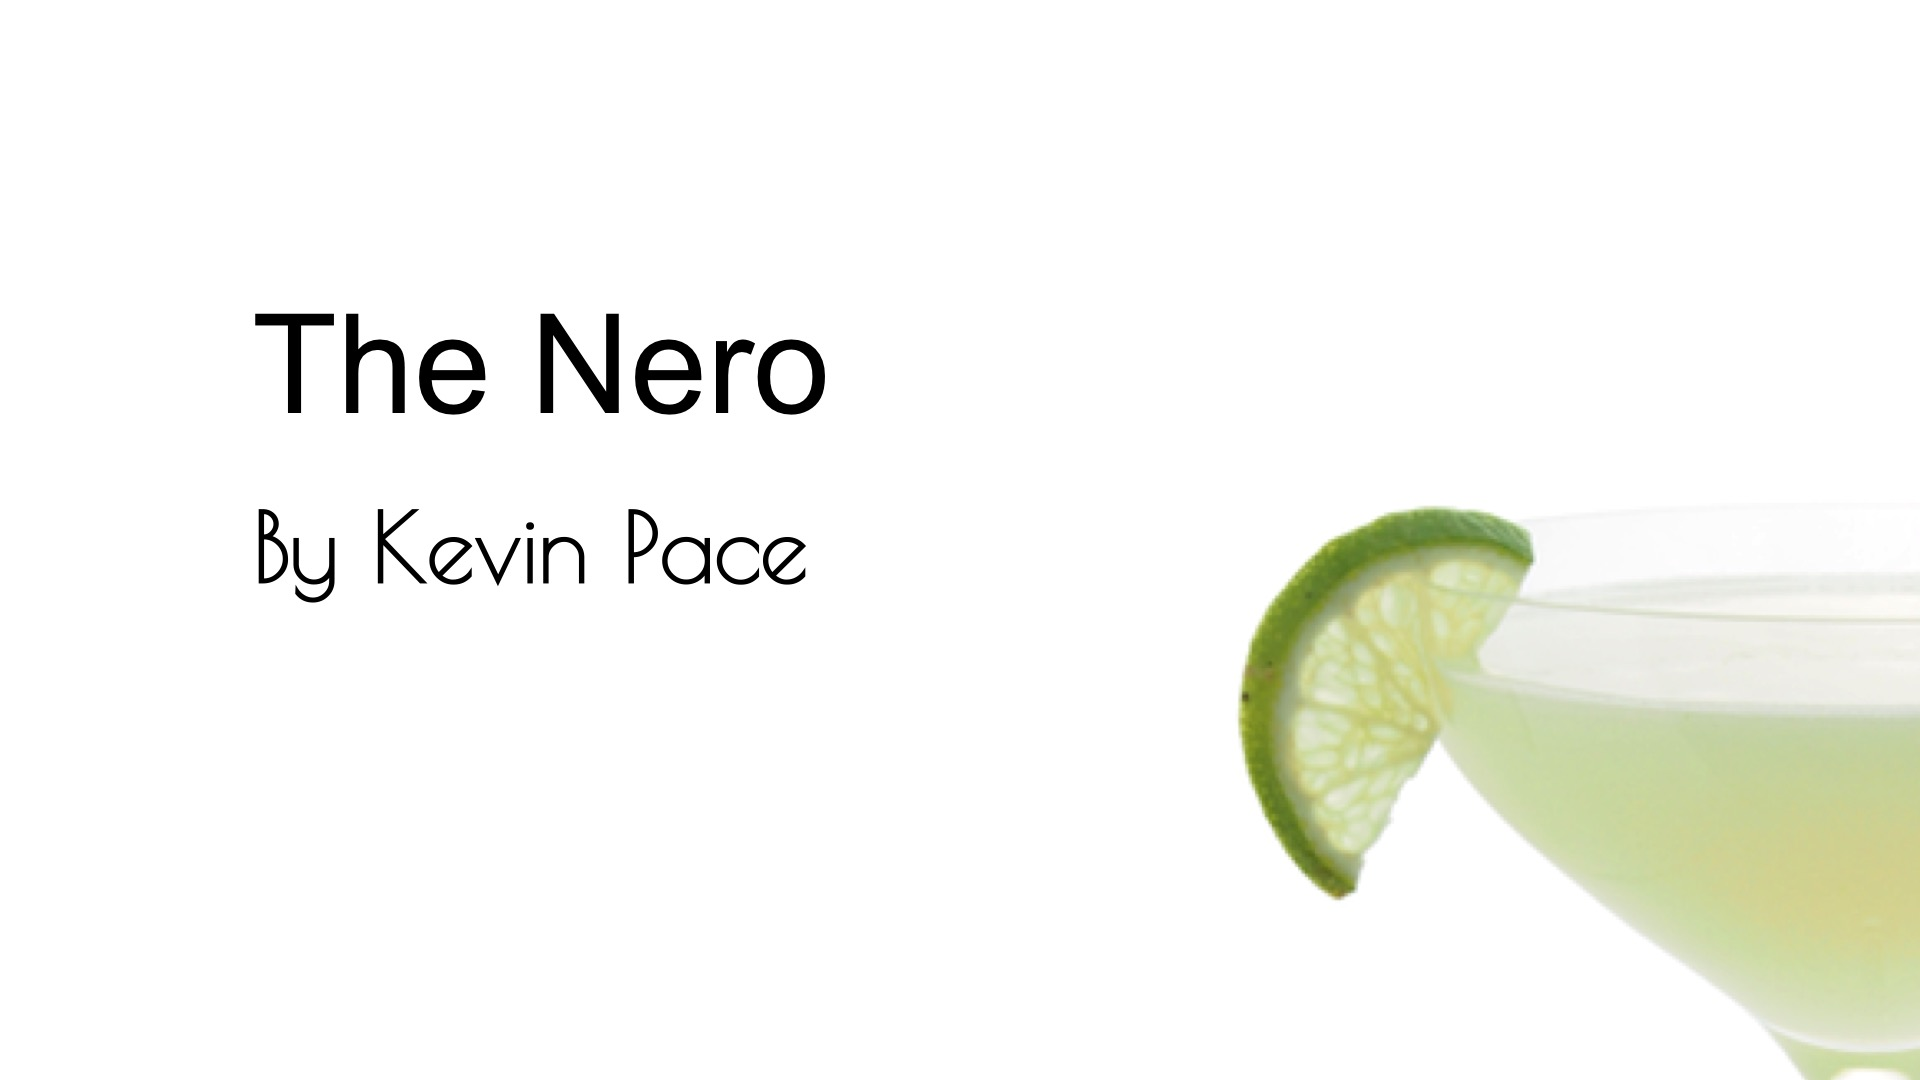 Video for The Nero from Commonwealth Cocktails